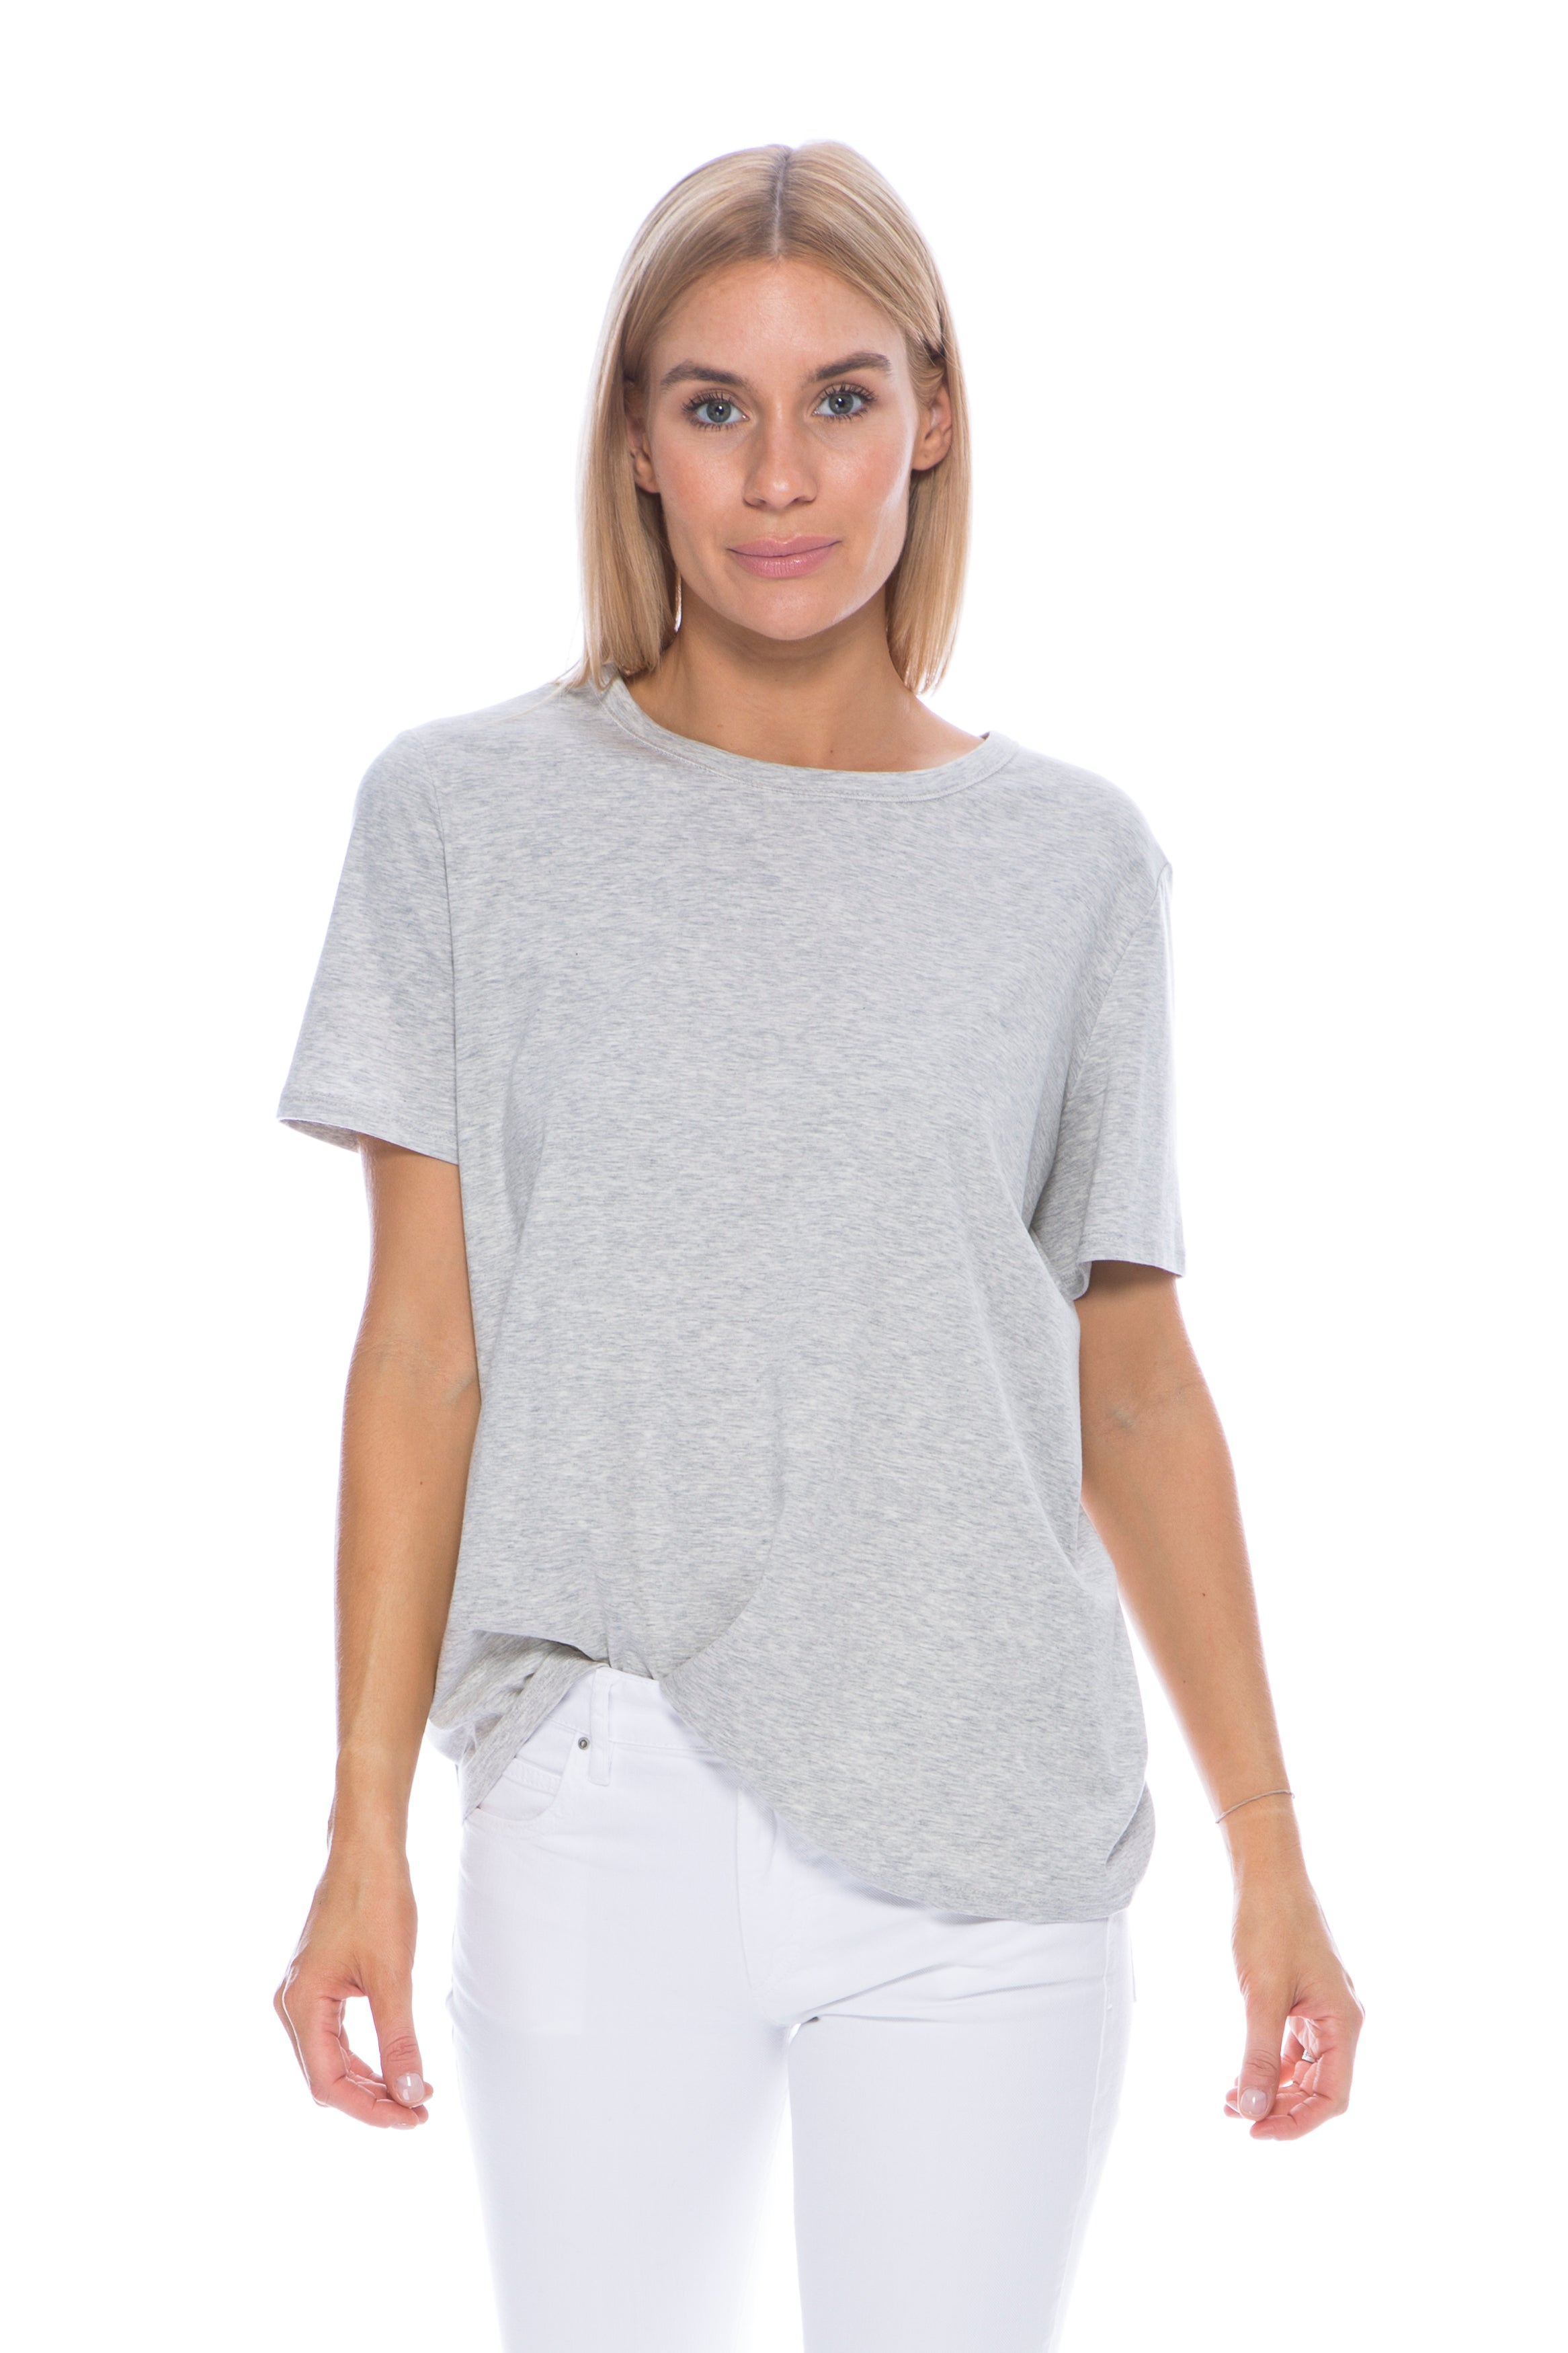 LANIE TOP LIGHT GREY